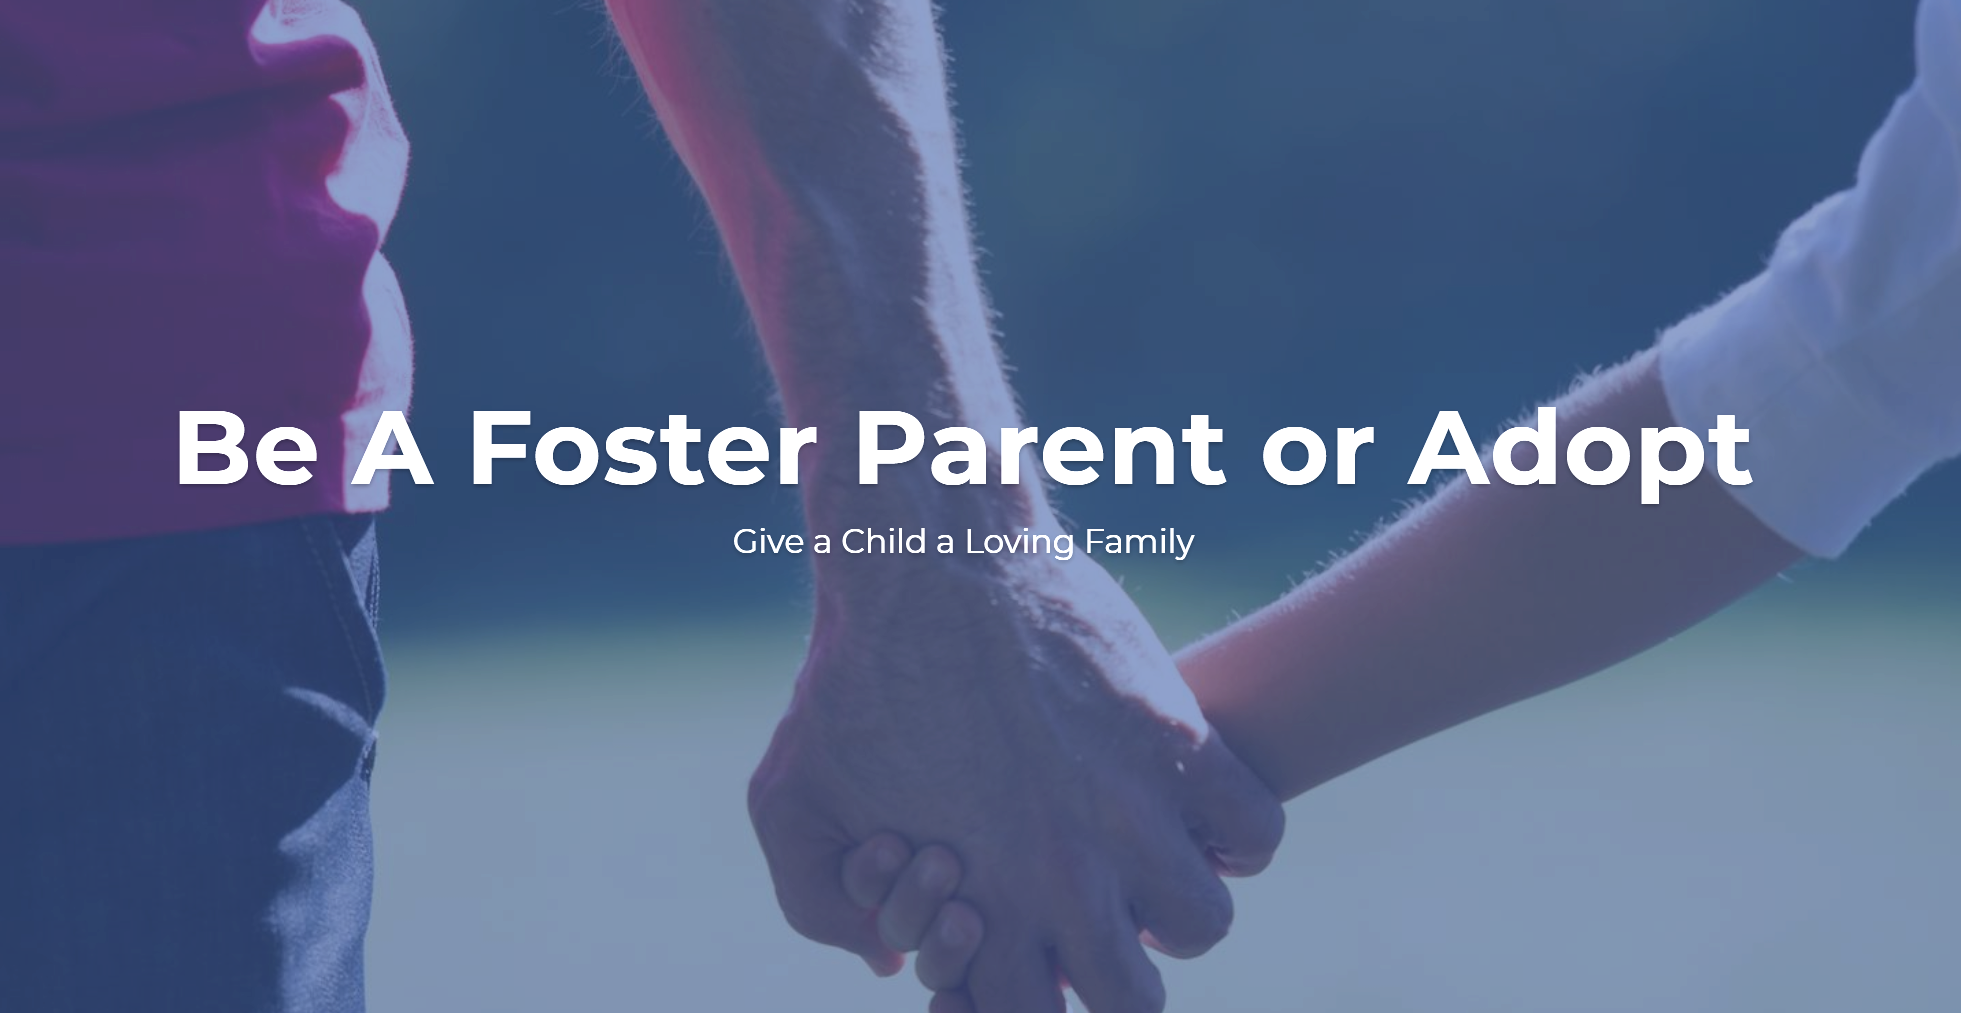 Be a Foster Parent – Web Copy and Landing Page